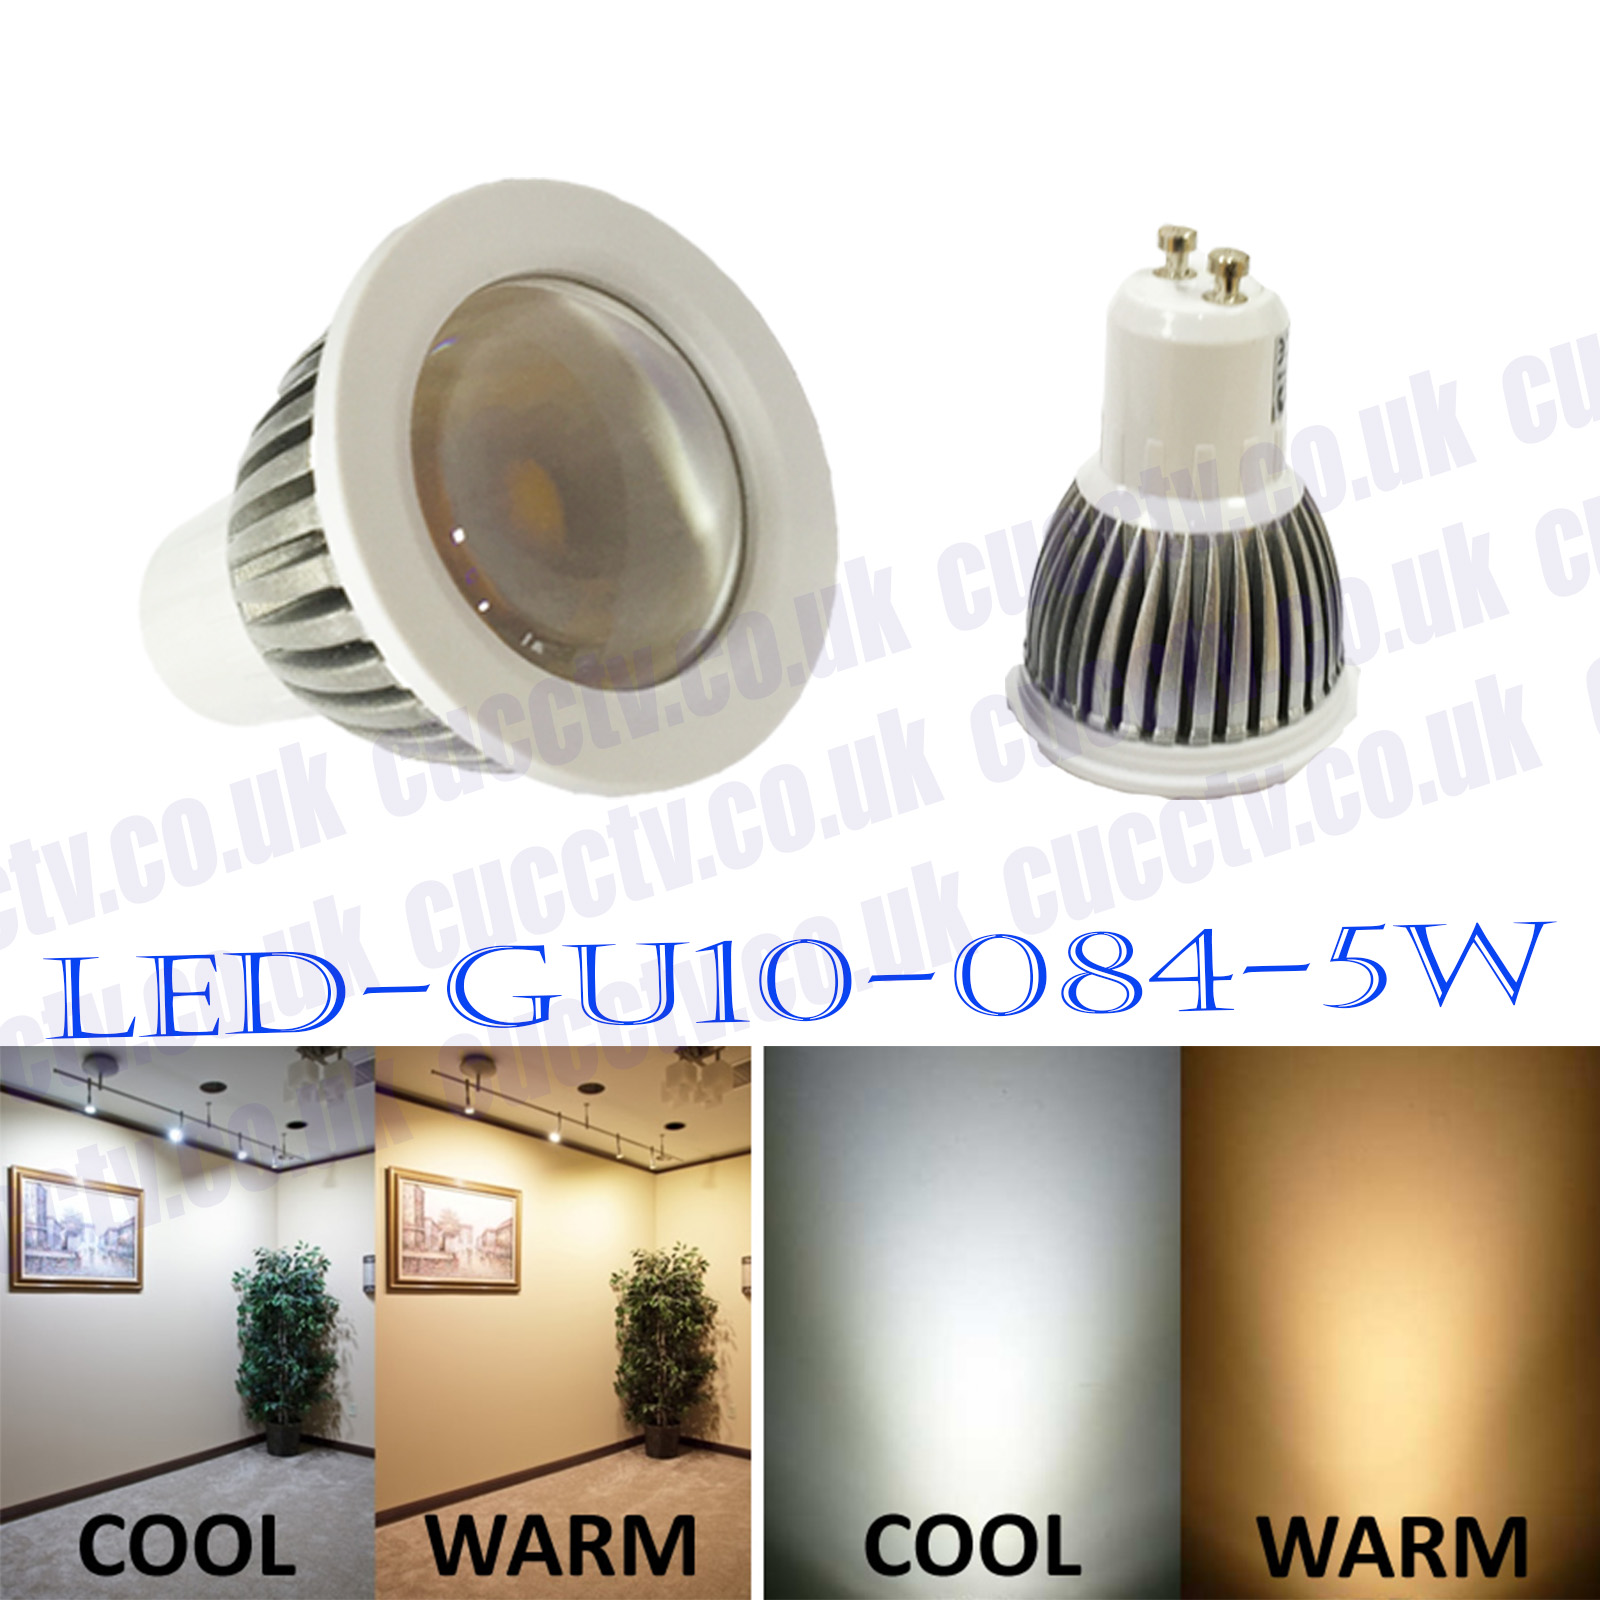 Led Gu10 5w Gu10 5w Led Light Bulb Cool Warm White High Power Energy Saving Led Gu10 084 5w